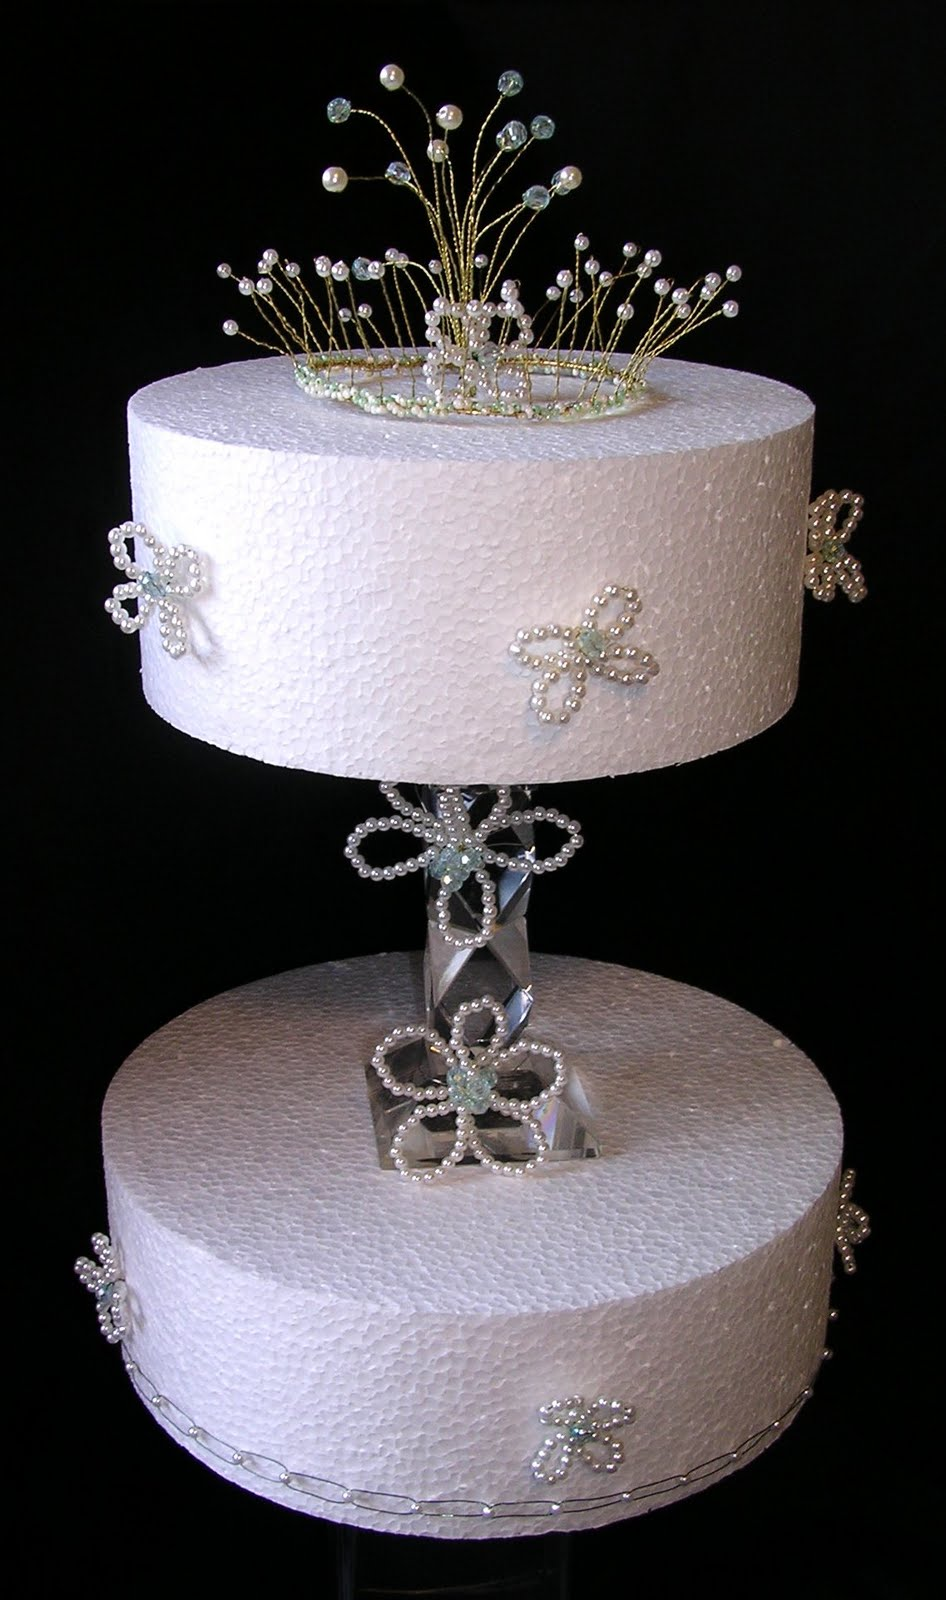 Split Tiered Cake With Crystal Support The Deatailing On The Cake